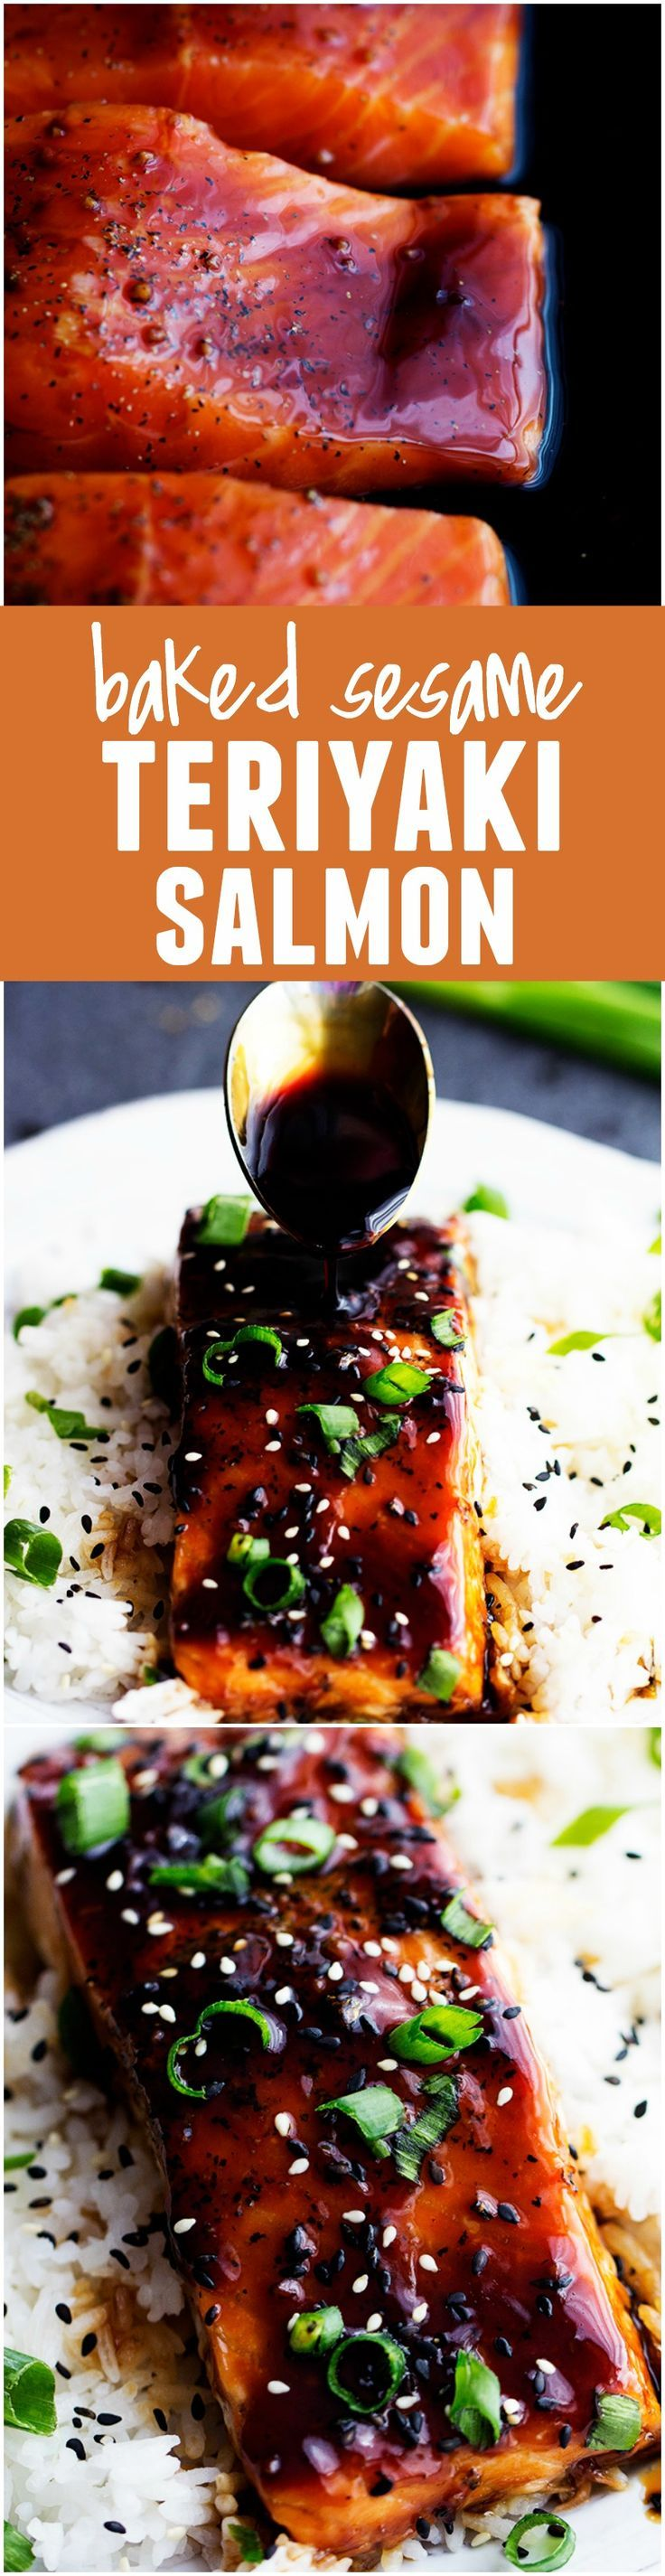 This Baked Sesame Salmon AKA THE BEST salmon you will ever eat!! The homemade sesame teriyaki sauce on top will blow your mind!